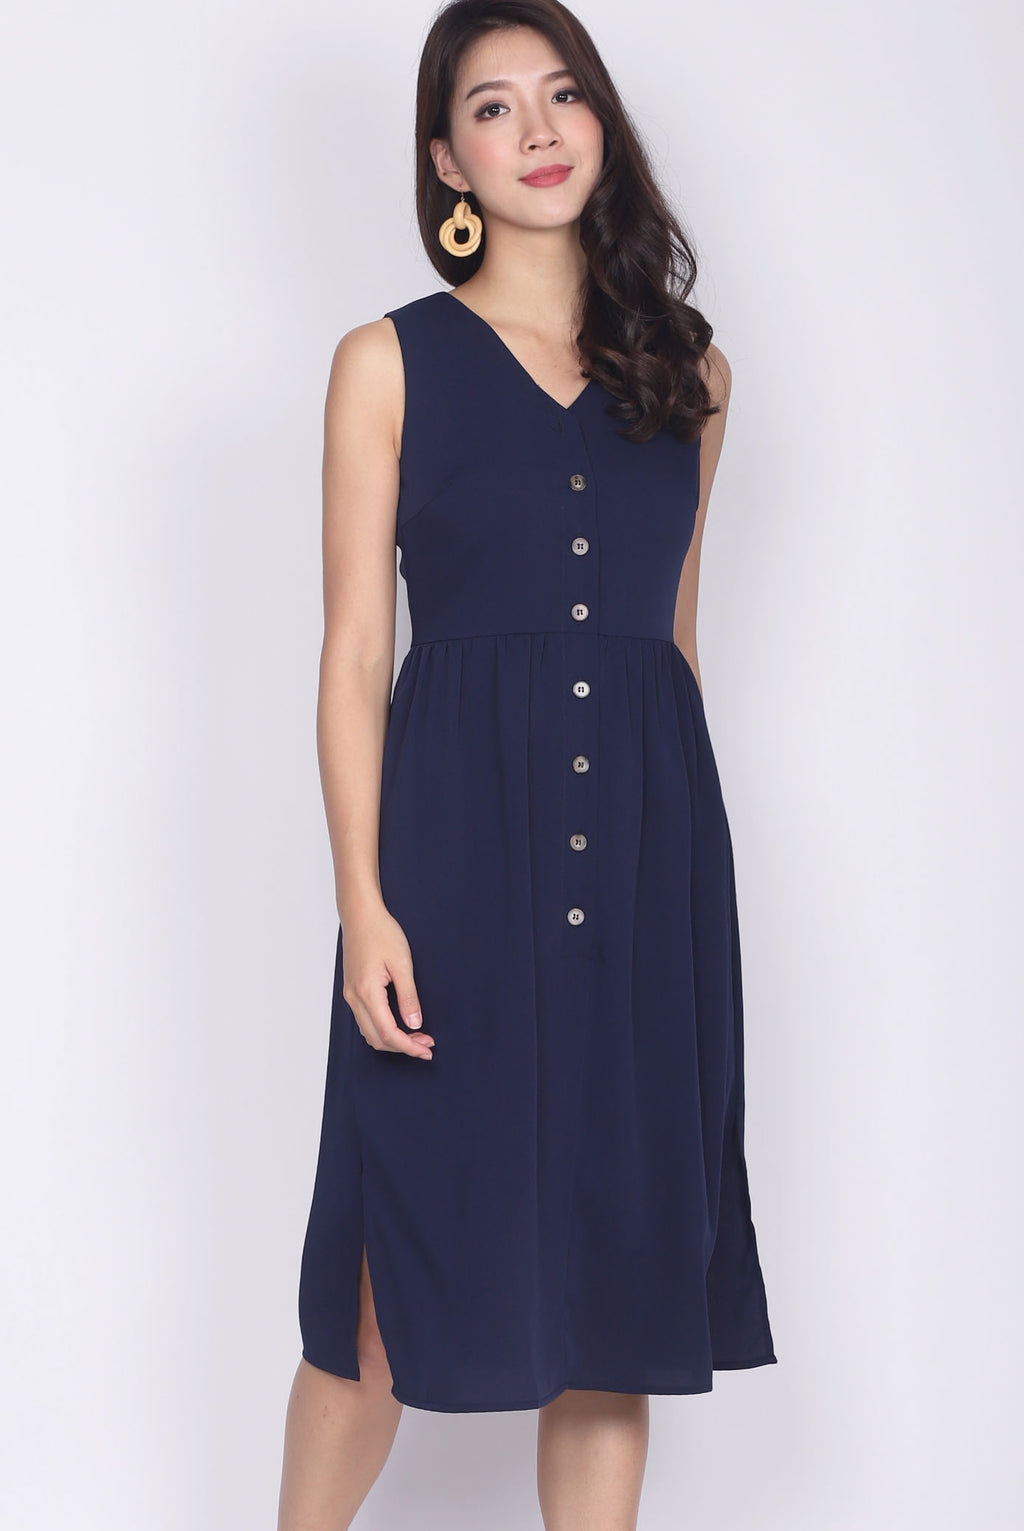 TDC Ludmila Buttons Slit Dress In Navy Blue